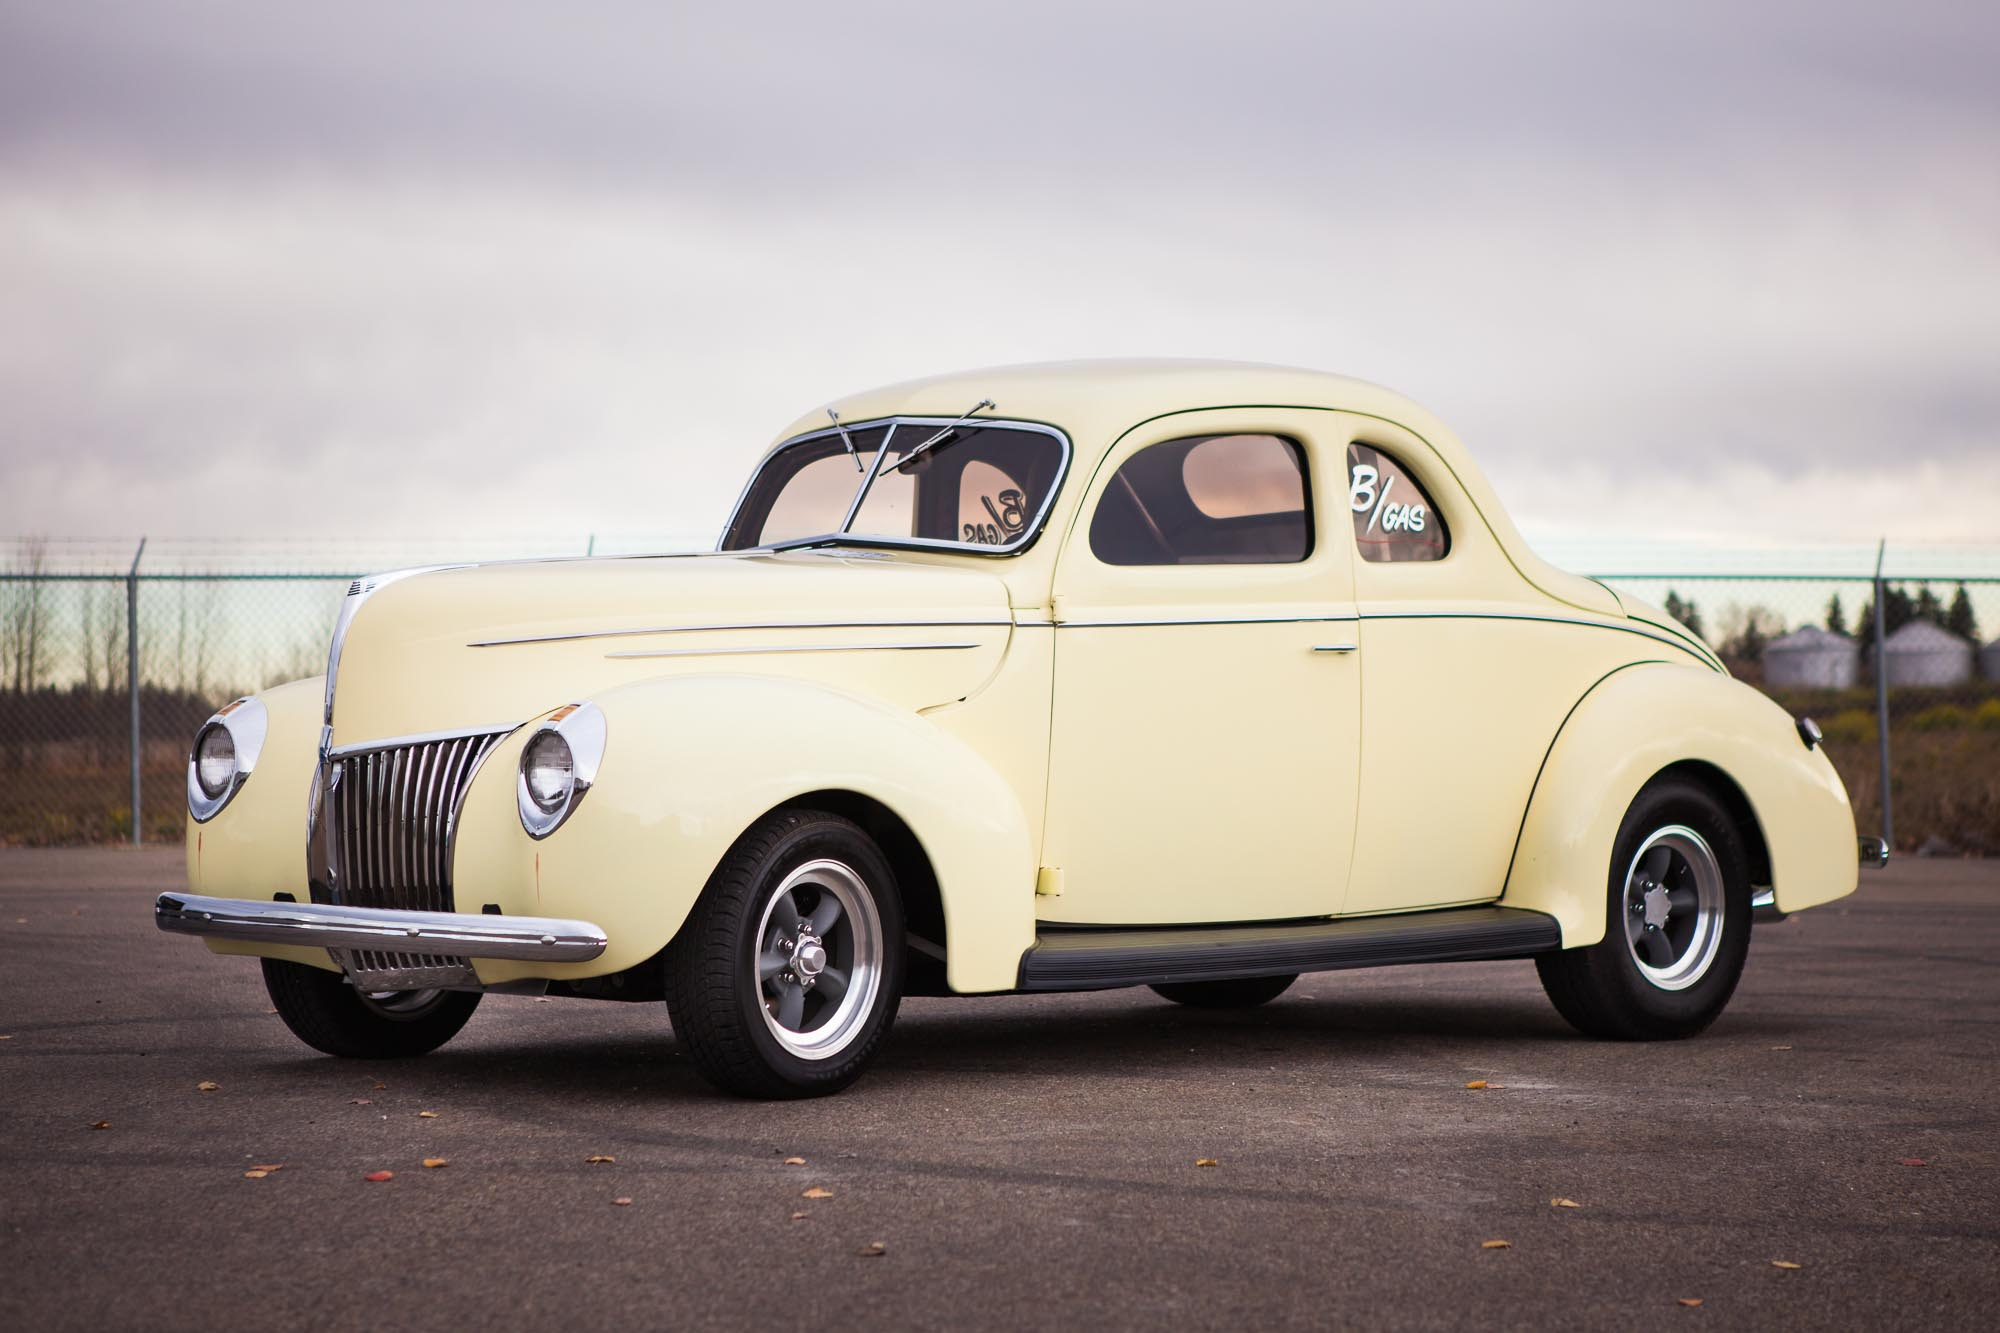 1939 Ford Custom Coupe - For Sale - The Iron Garage